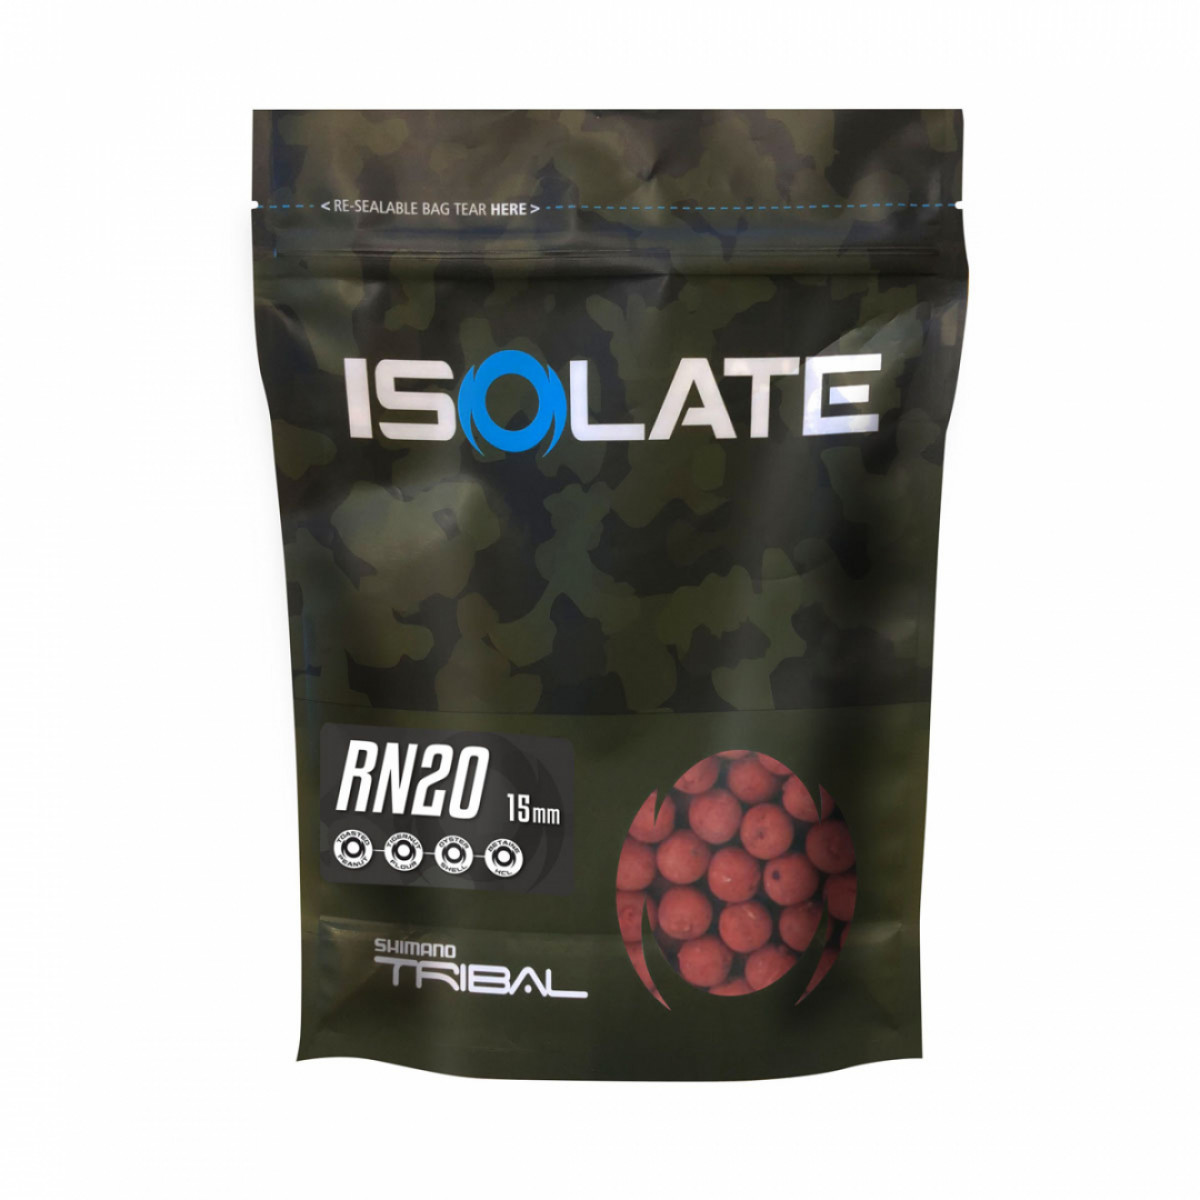 Isolate RN20